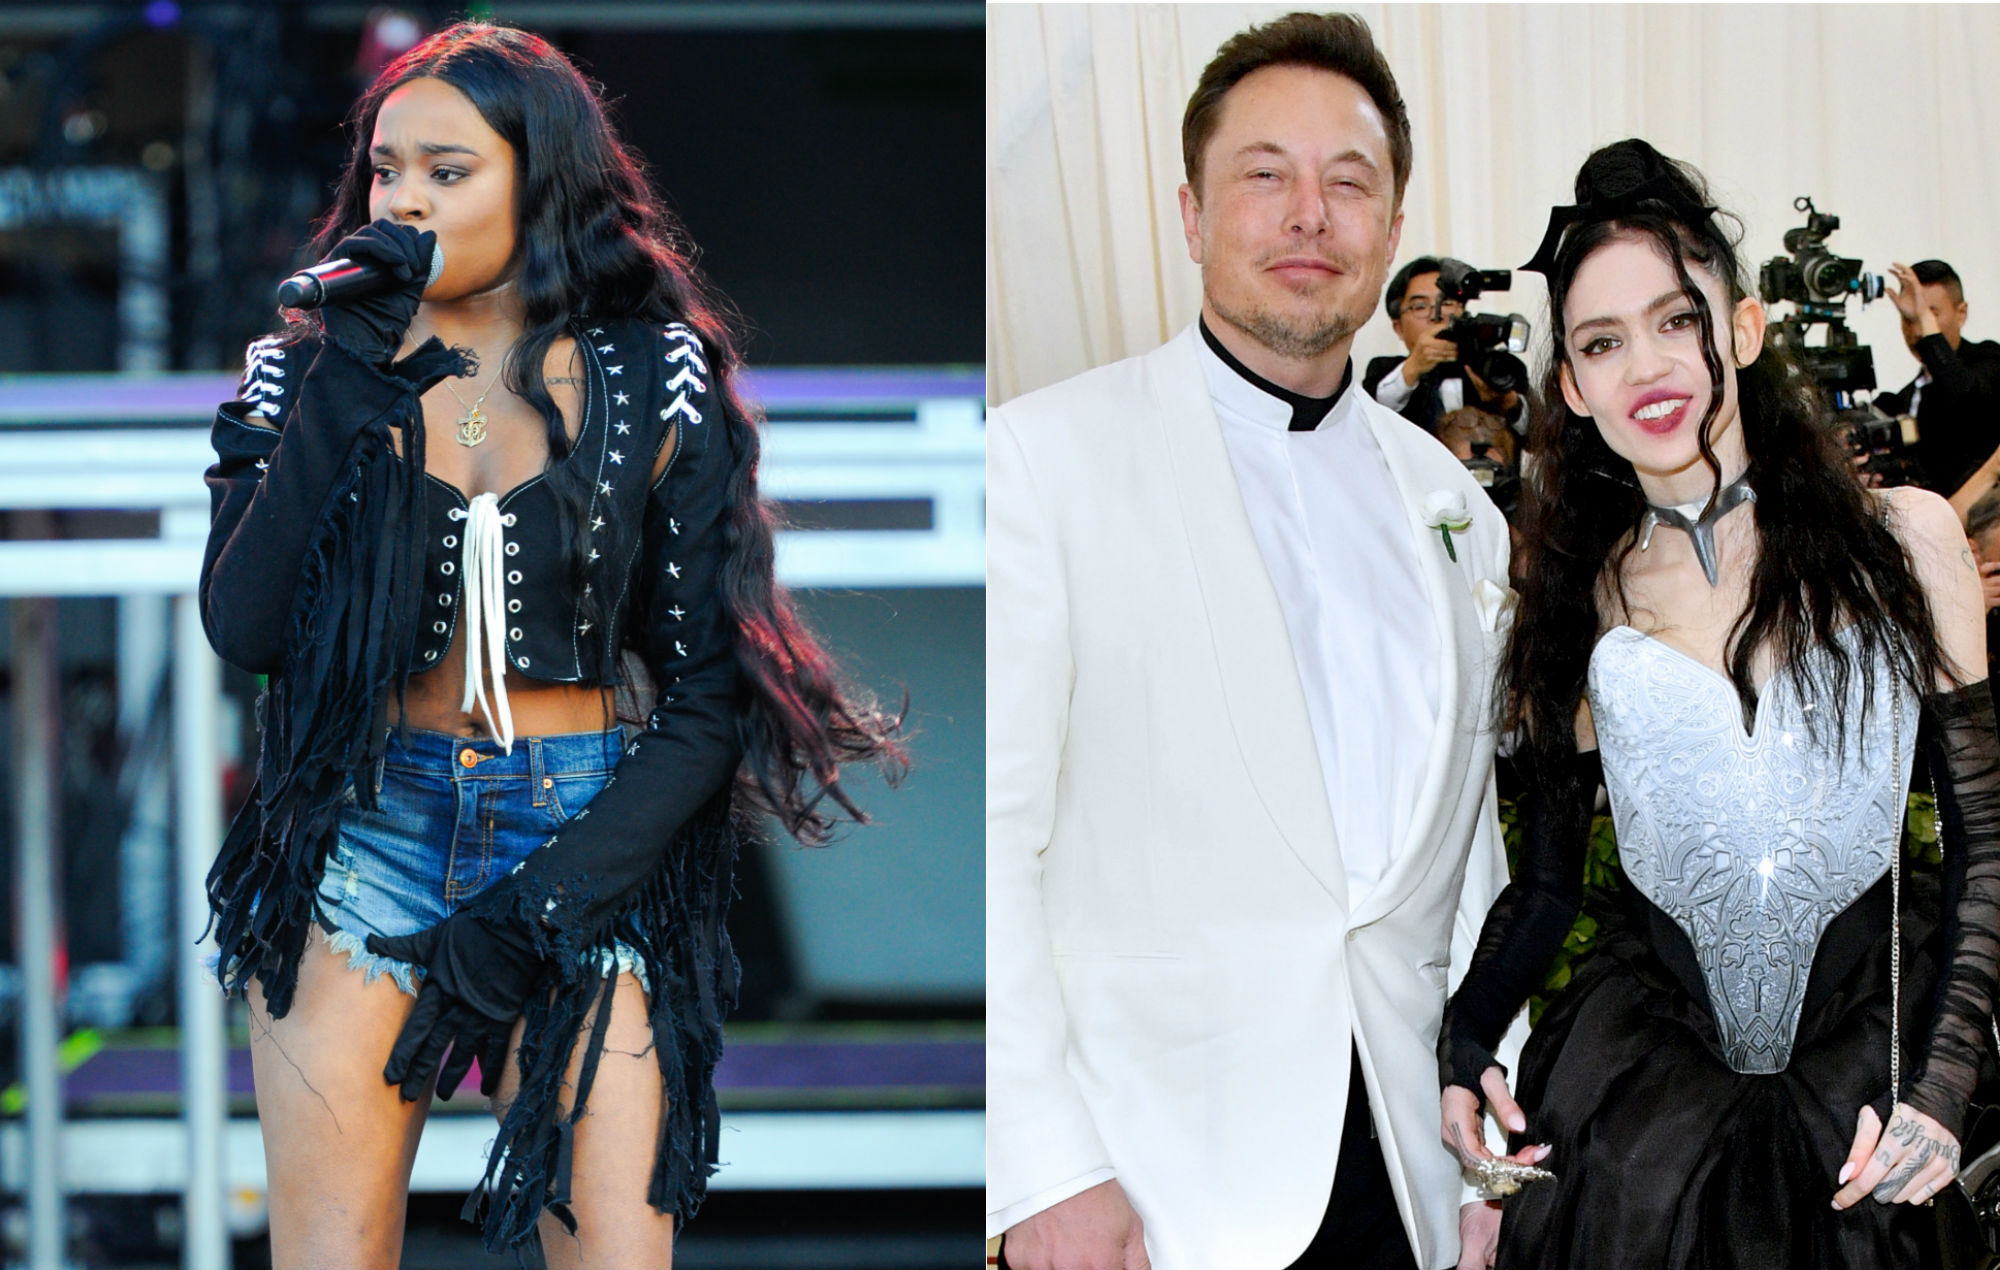 From Weed To A Giant Dick Azealia Banks Is Sharing Crazy Screenshots Of Her Bizarre Conversations With Grimes And Elon Musk